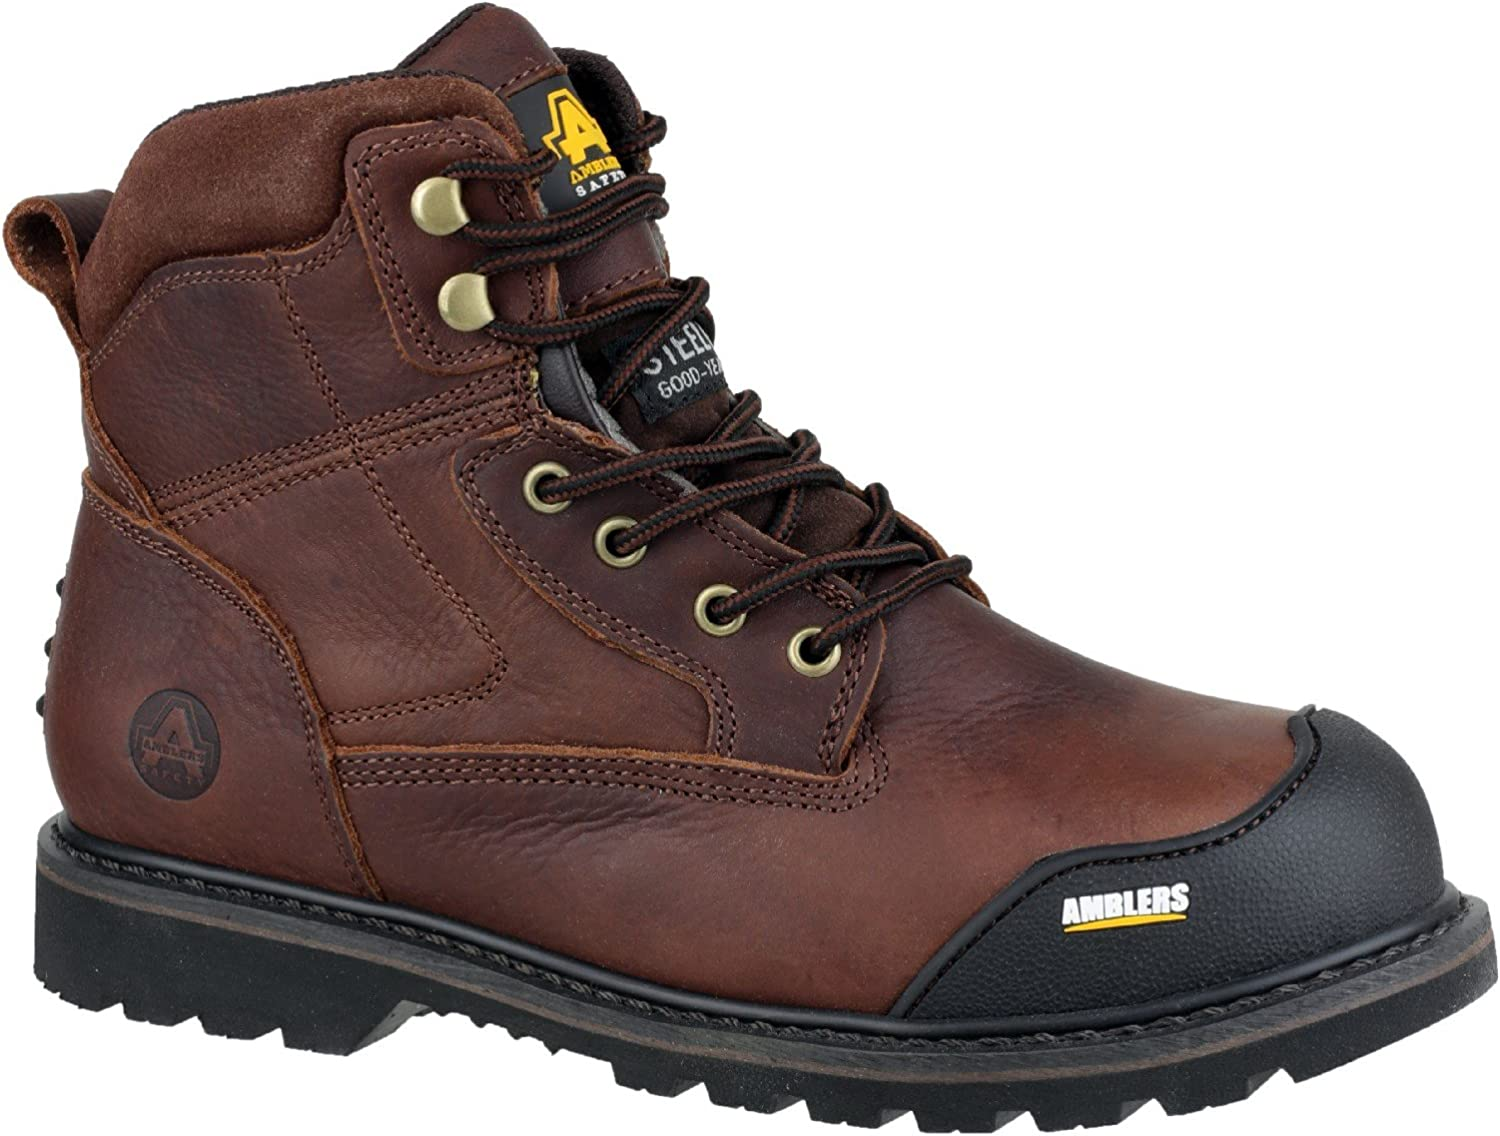 Amblers Safety FS167 Steel Toe Safety Work Boot